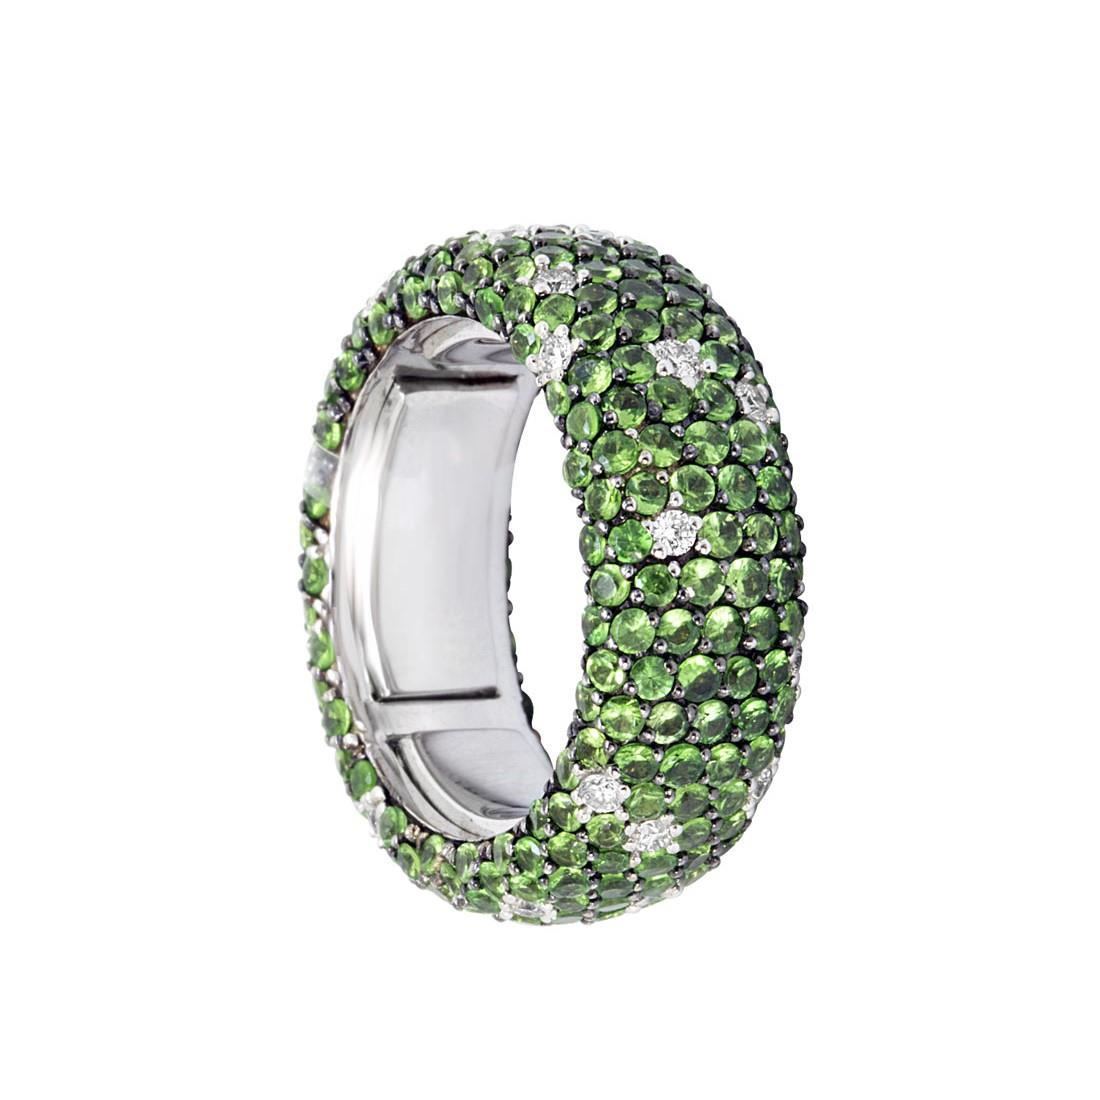 Anello eternity in oro bianco con diamanti ct 0.50 e tsavorite ct 4.60 - ALFIERI ST JOHN